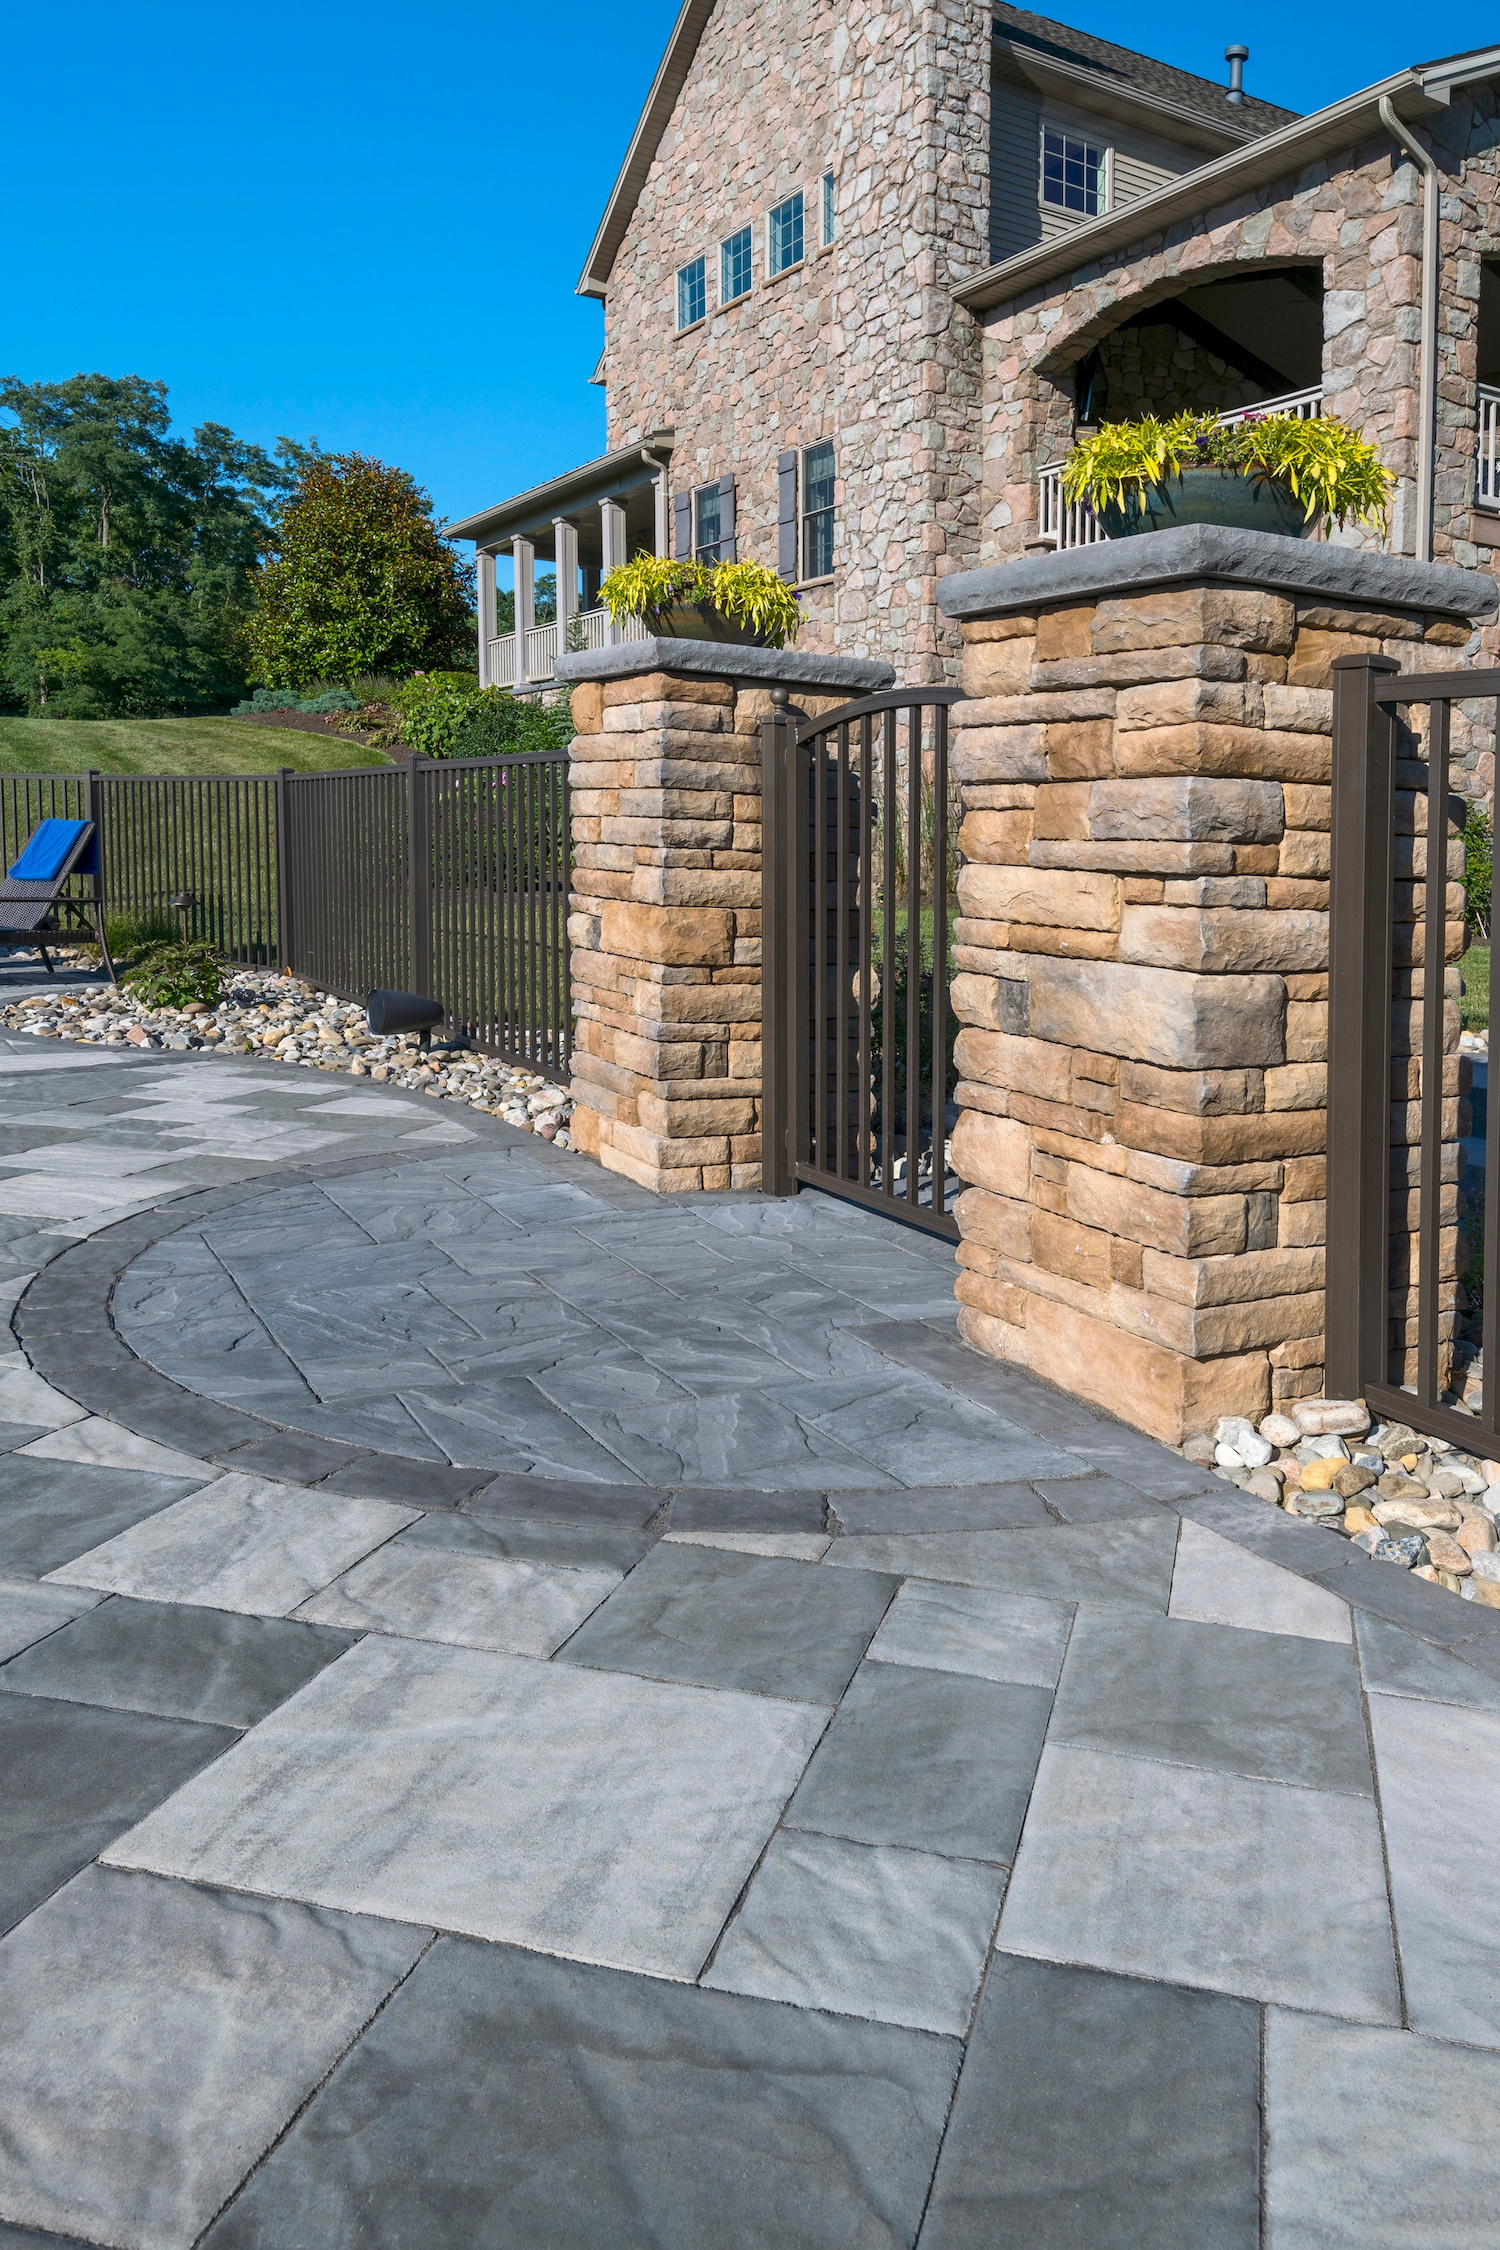 New Landscape Design Trends: The New Pavers Perfect for Your Patio